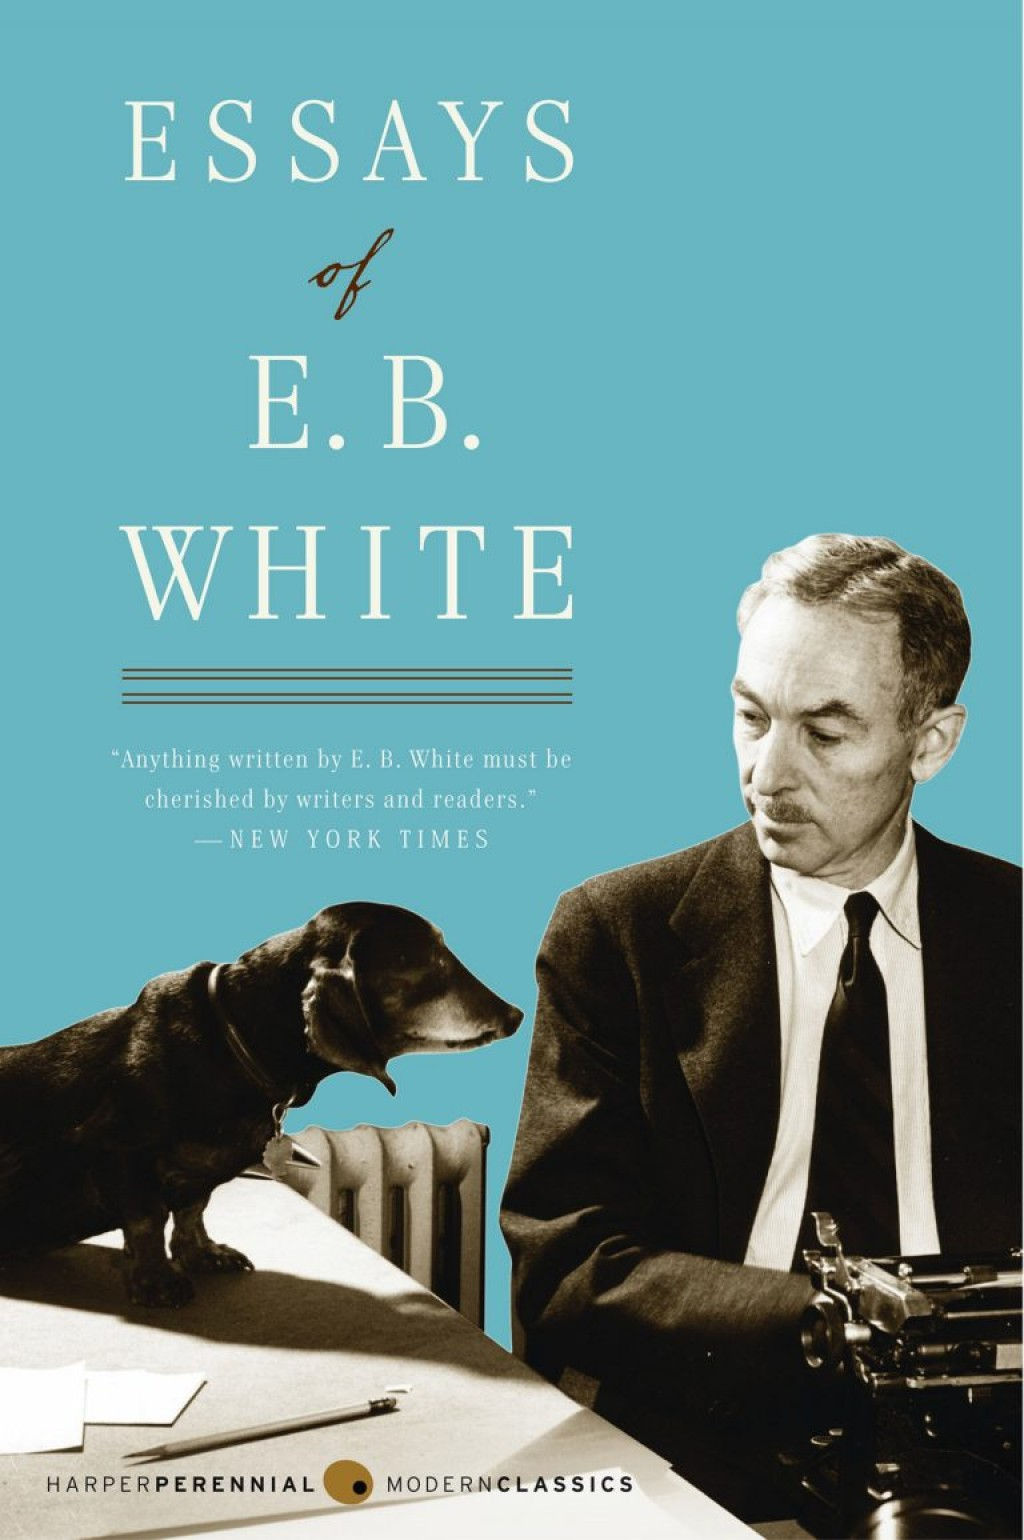 001 Essay Example Essays Of White Impressive Eb Table Contents Analysis White's Once More To The Lake Large